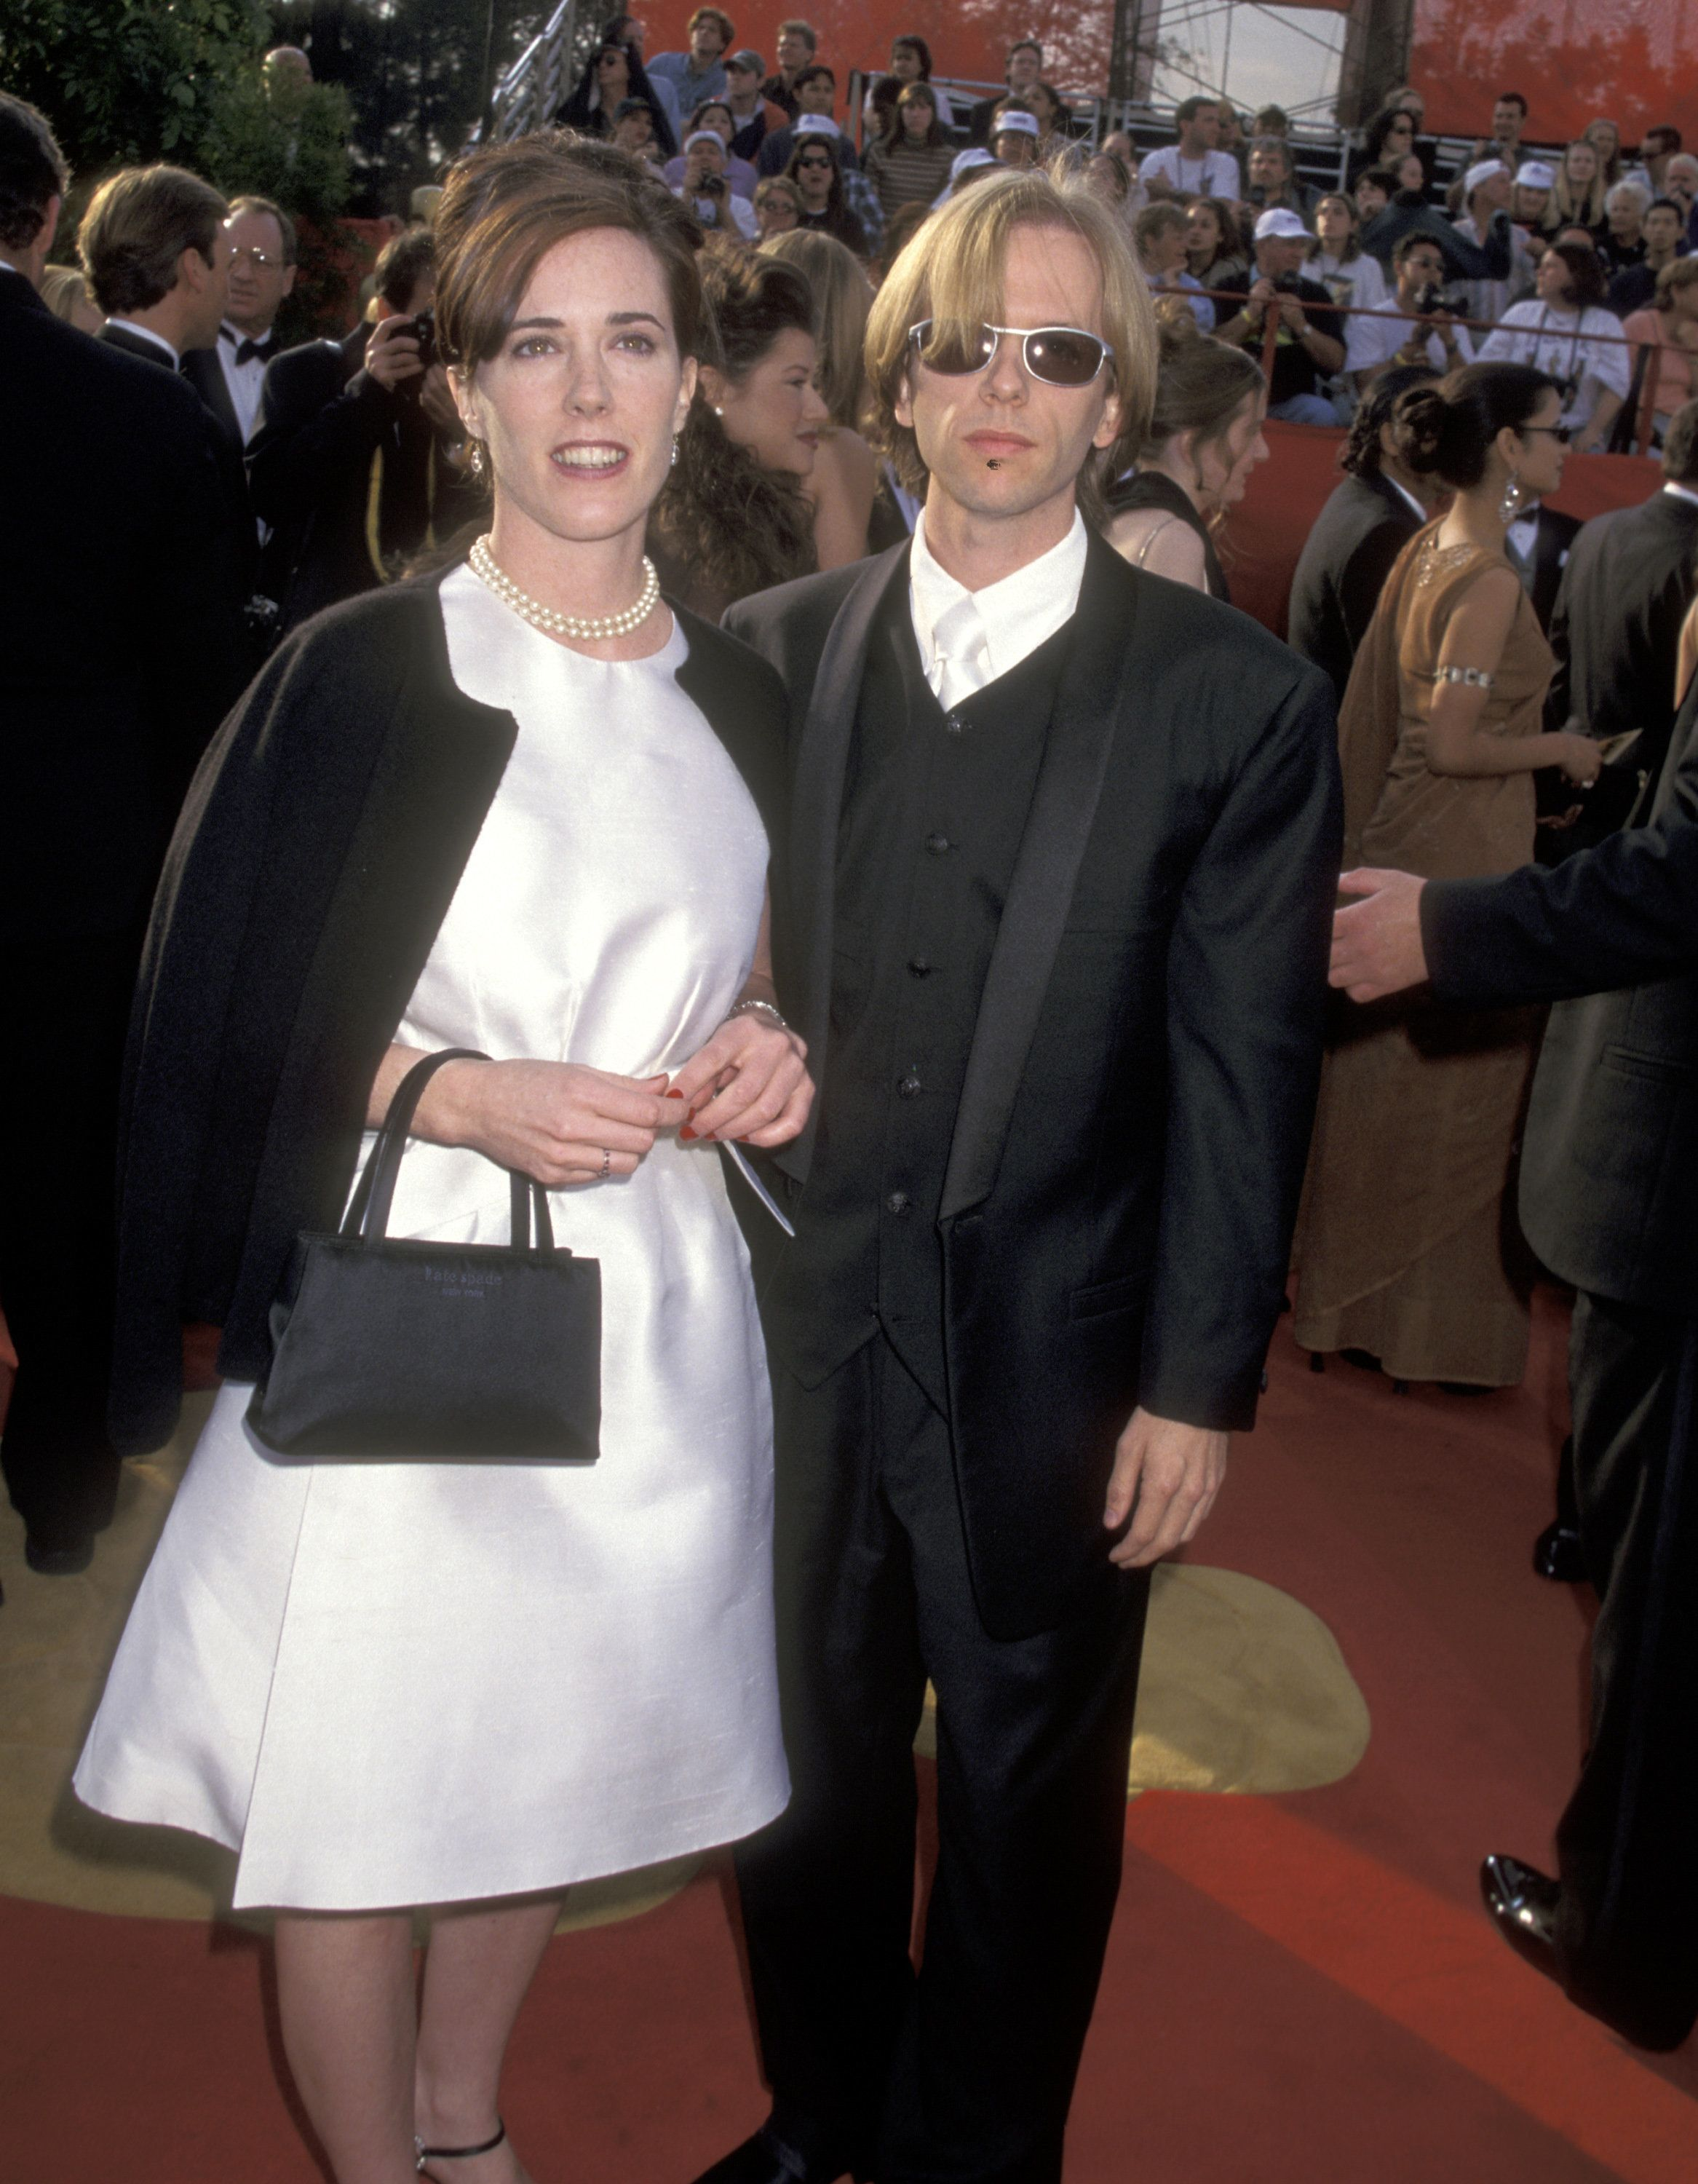 Ron Galella via Getty Images                   Kate Spade appears with brother-in-law David Spade at the 69th Annual Academy Awards in 1997 in Los Angeles